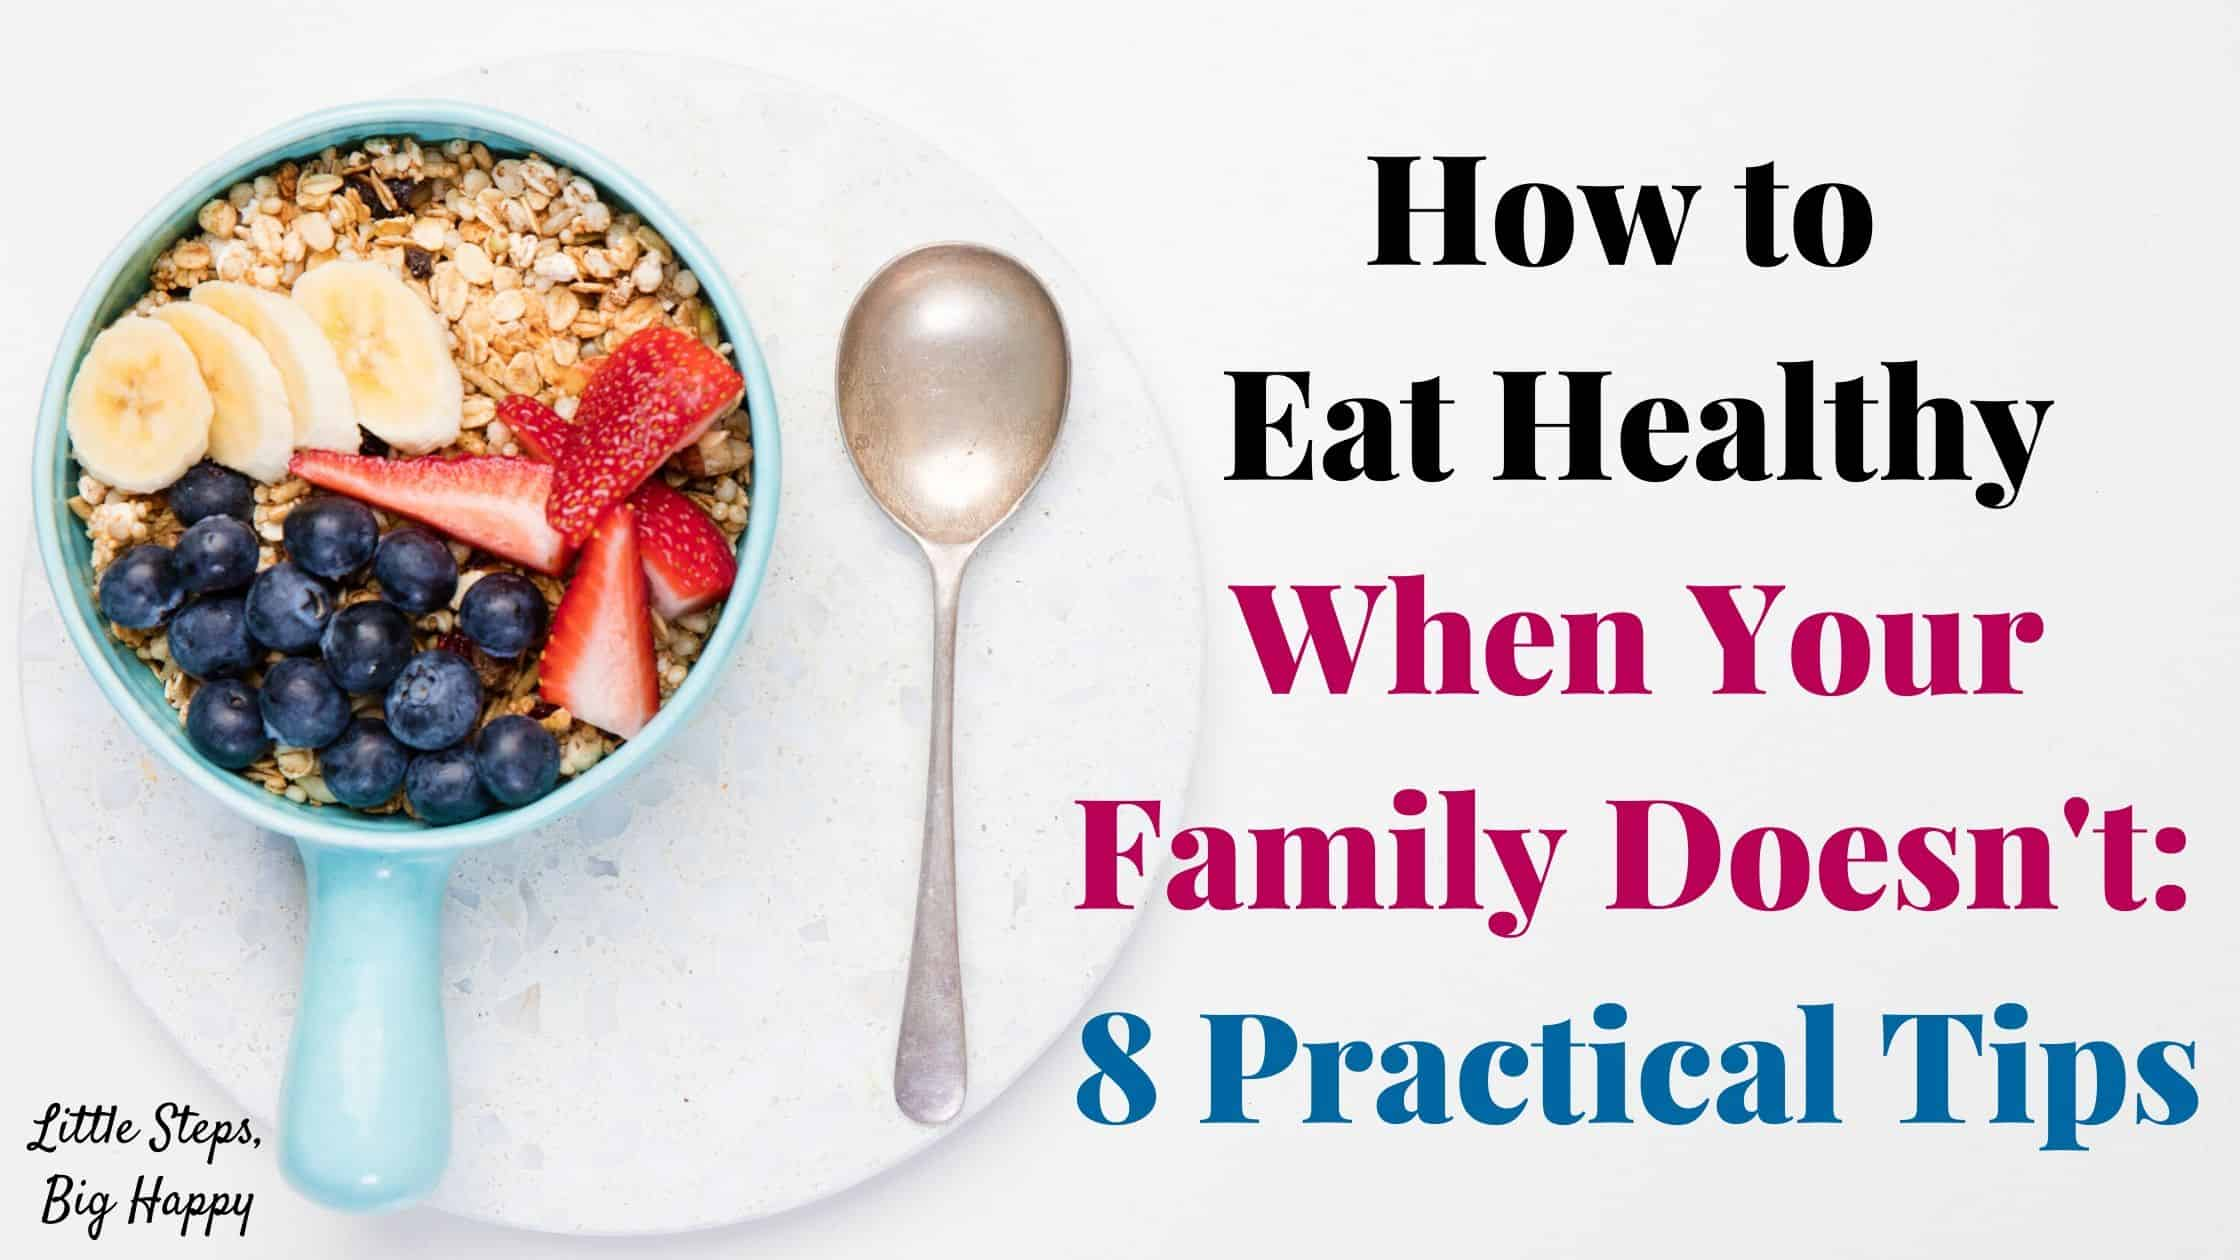 How to Eat Healthy When Your Family Doesn't: 8 Practical Tips